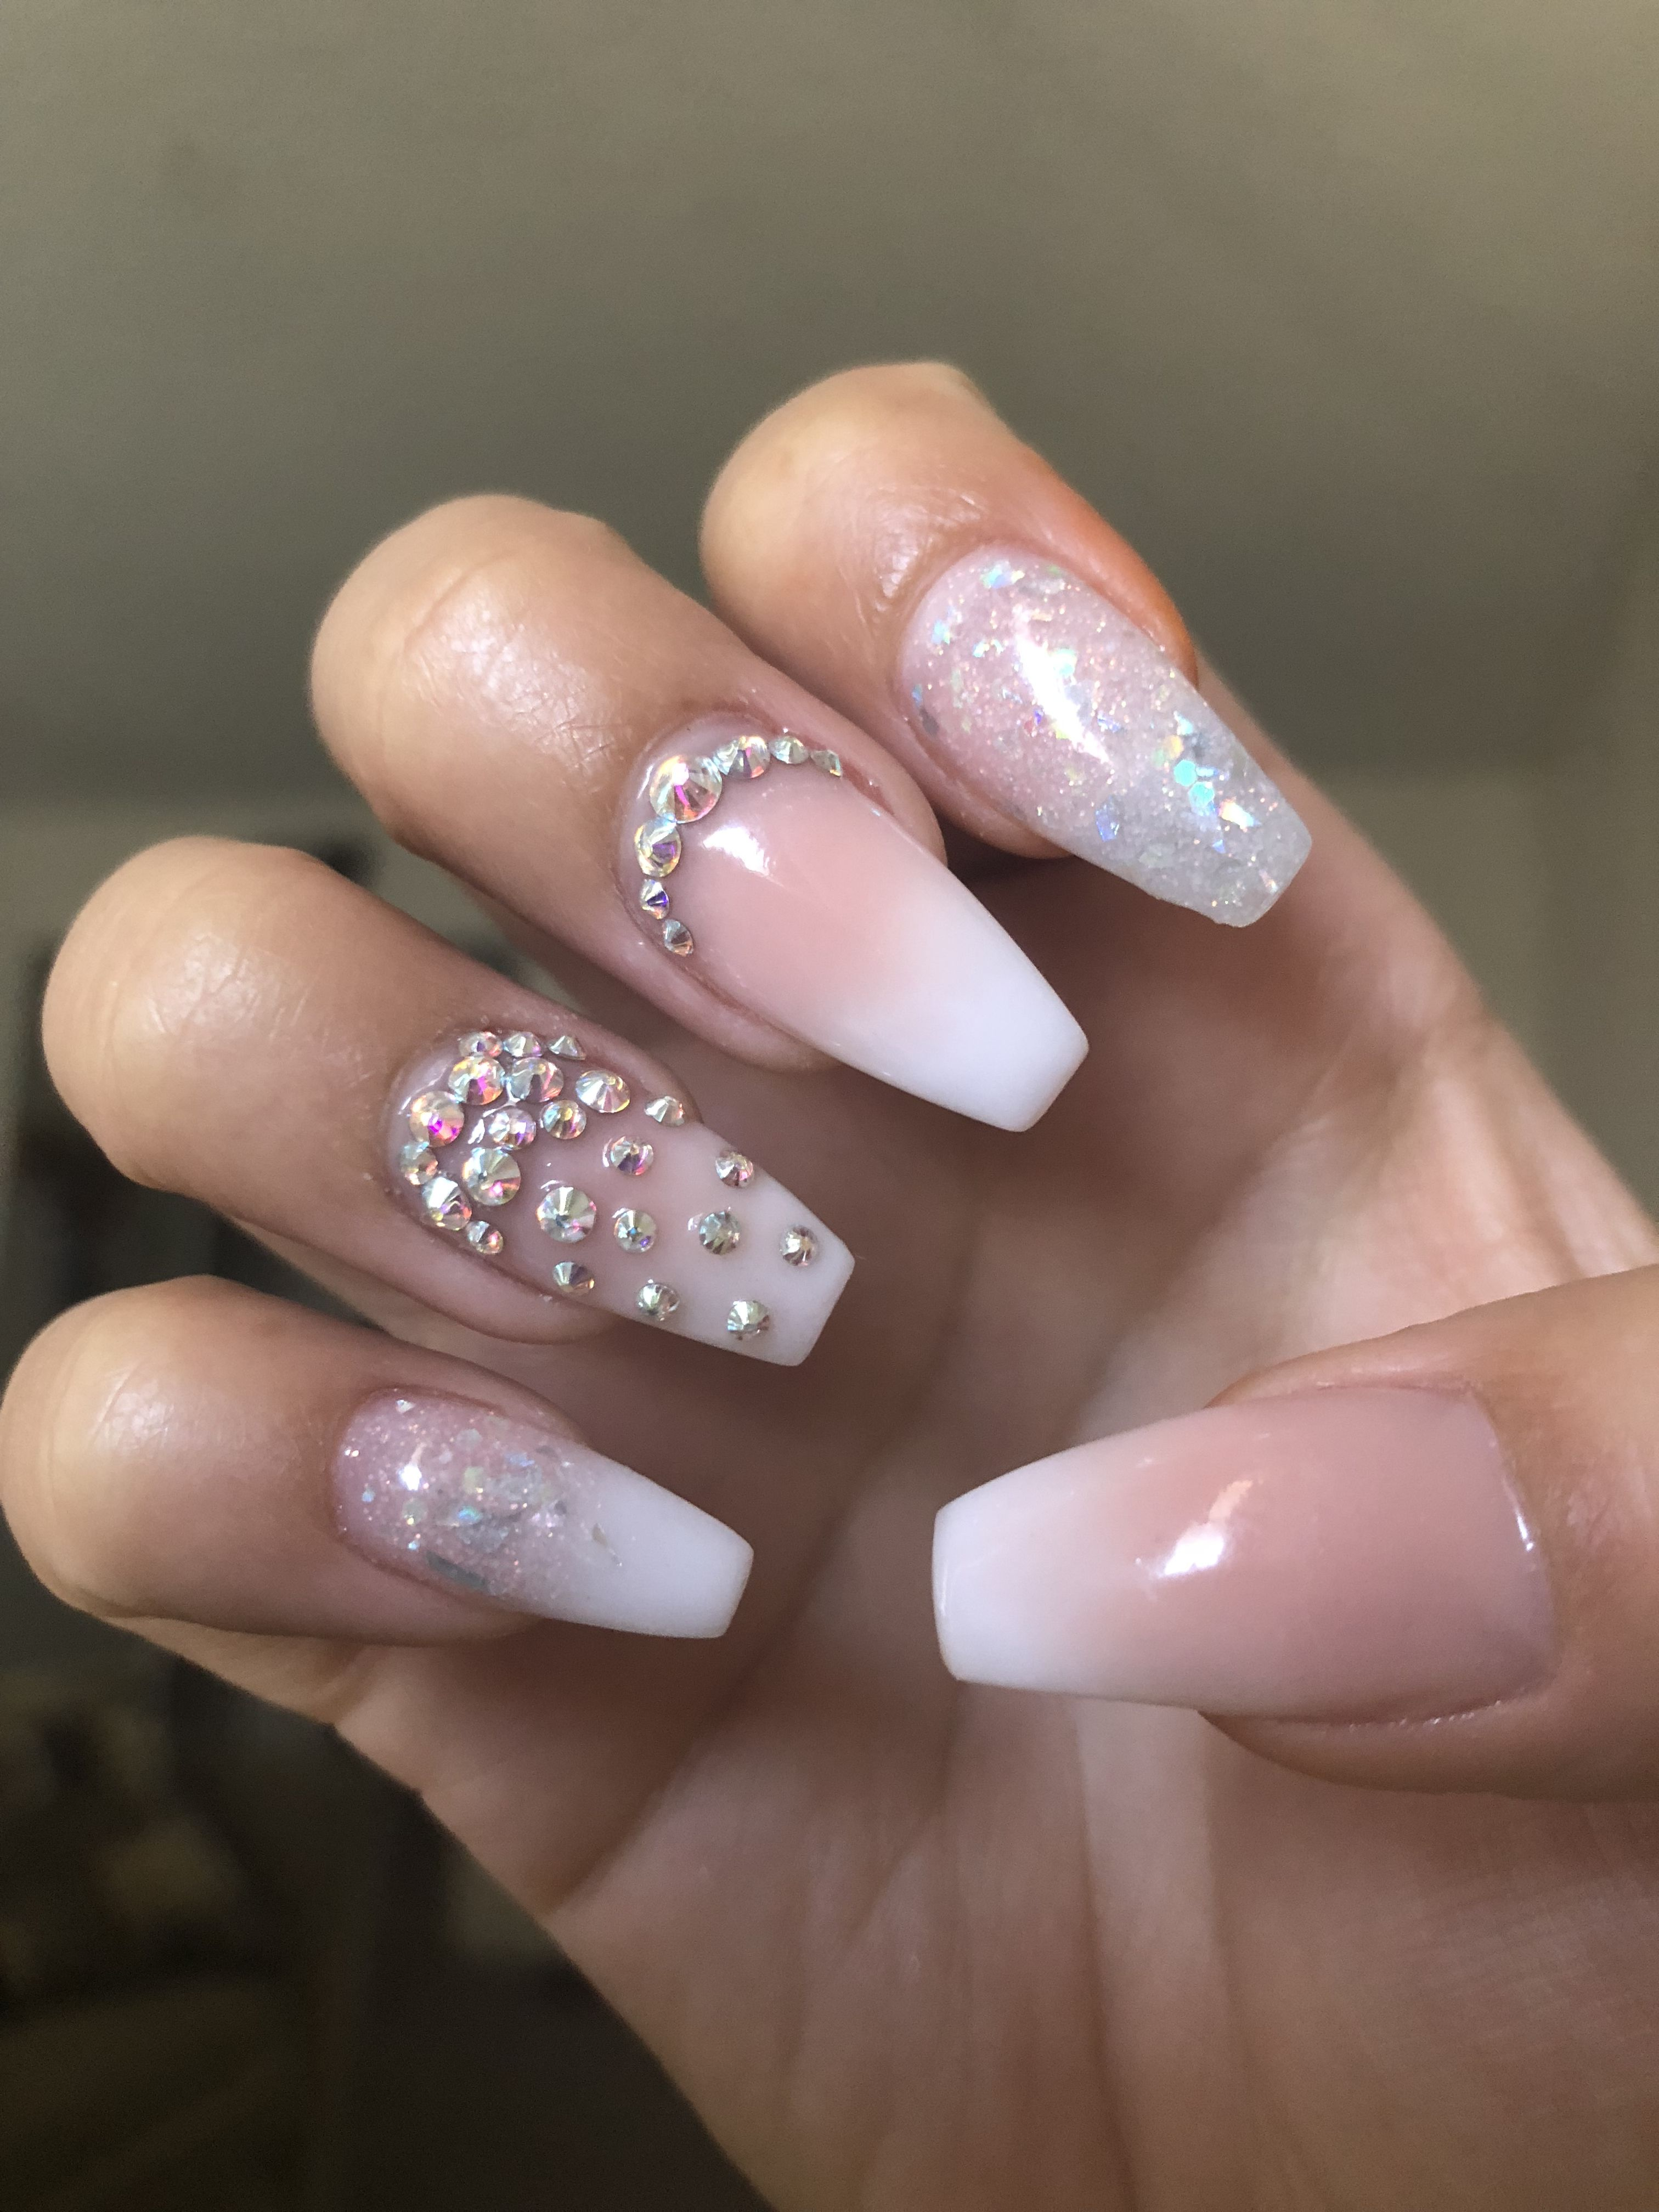 French Ombre Coffin Shaped Nails With Rhinestone Glitter Coffin Shape Nails Ombre Nails Glitter Rhinestone Nails